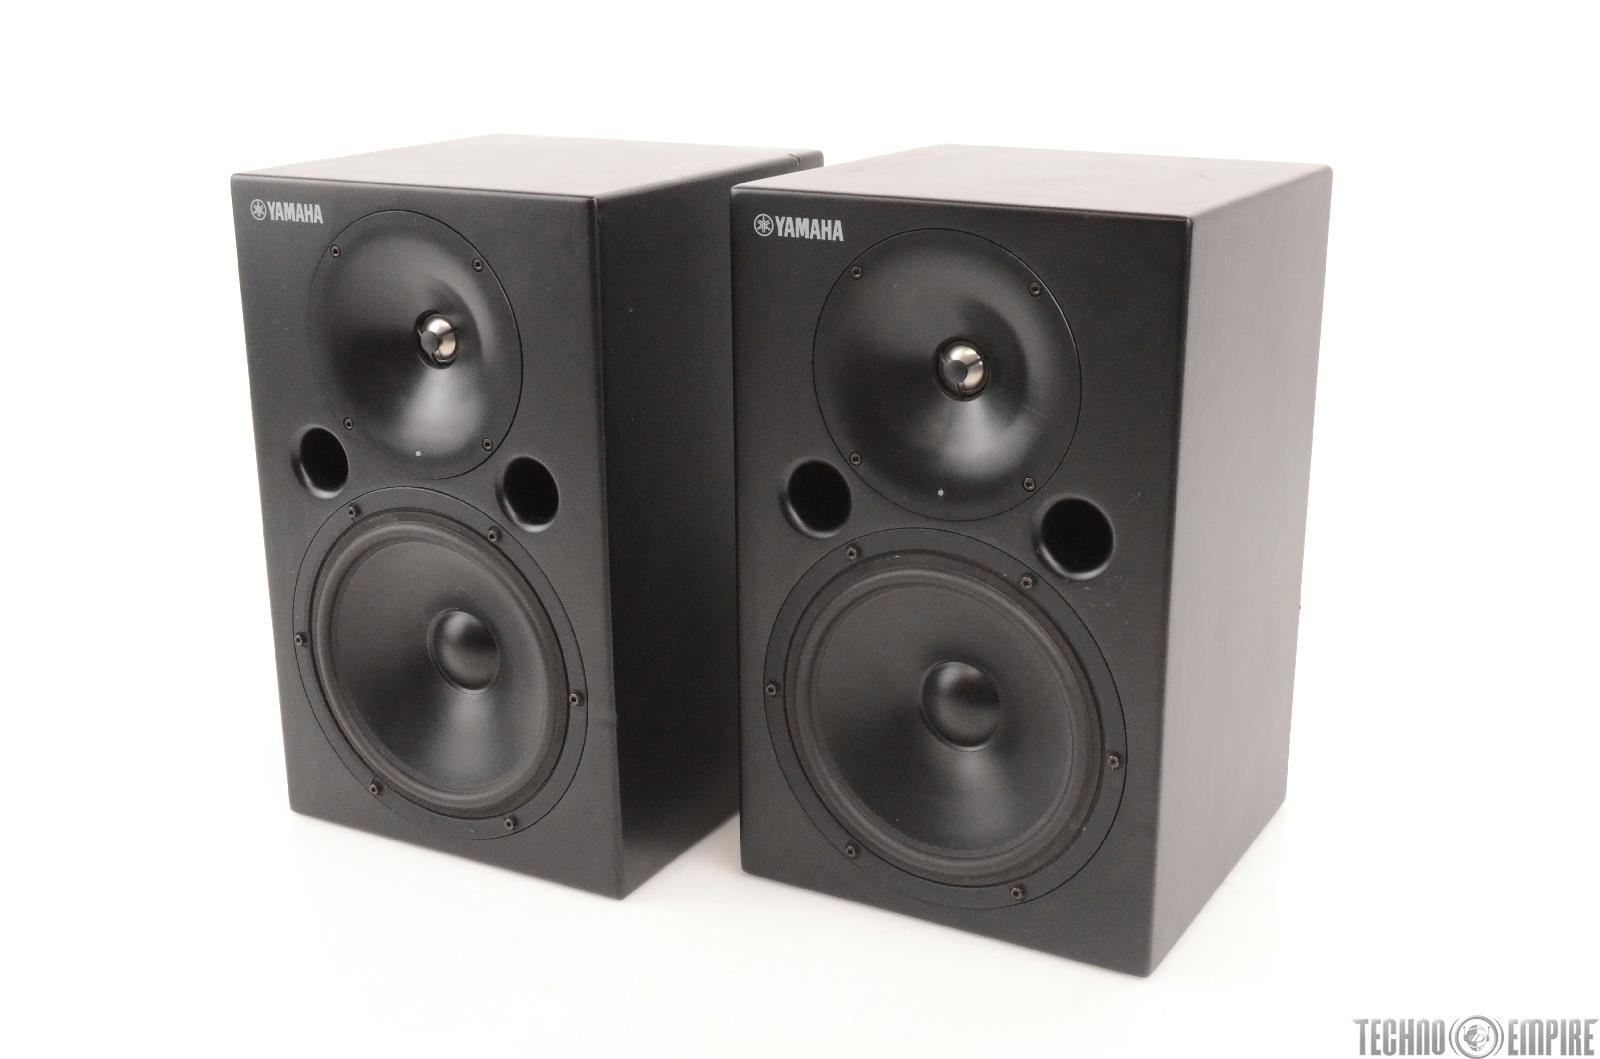 yamaha msp10 powered studio reference monitor speakers pair 24627. Black Bedroom Furniture Sets. Home Design Ideas